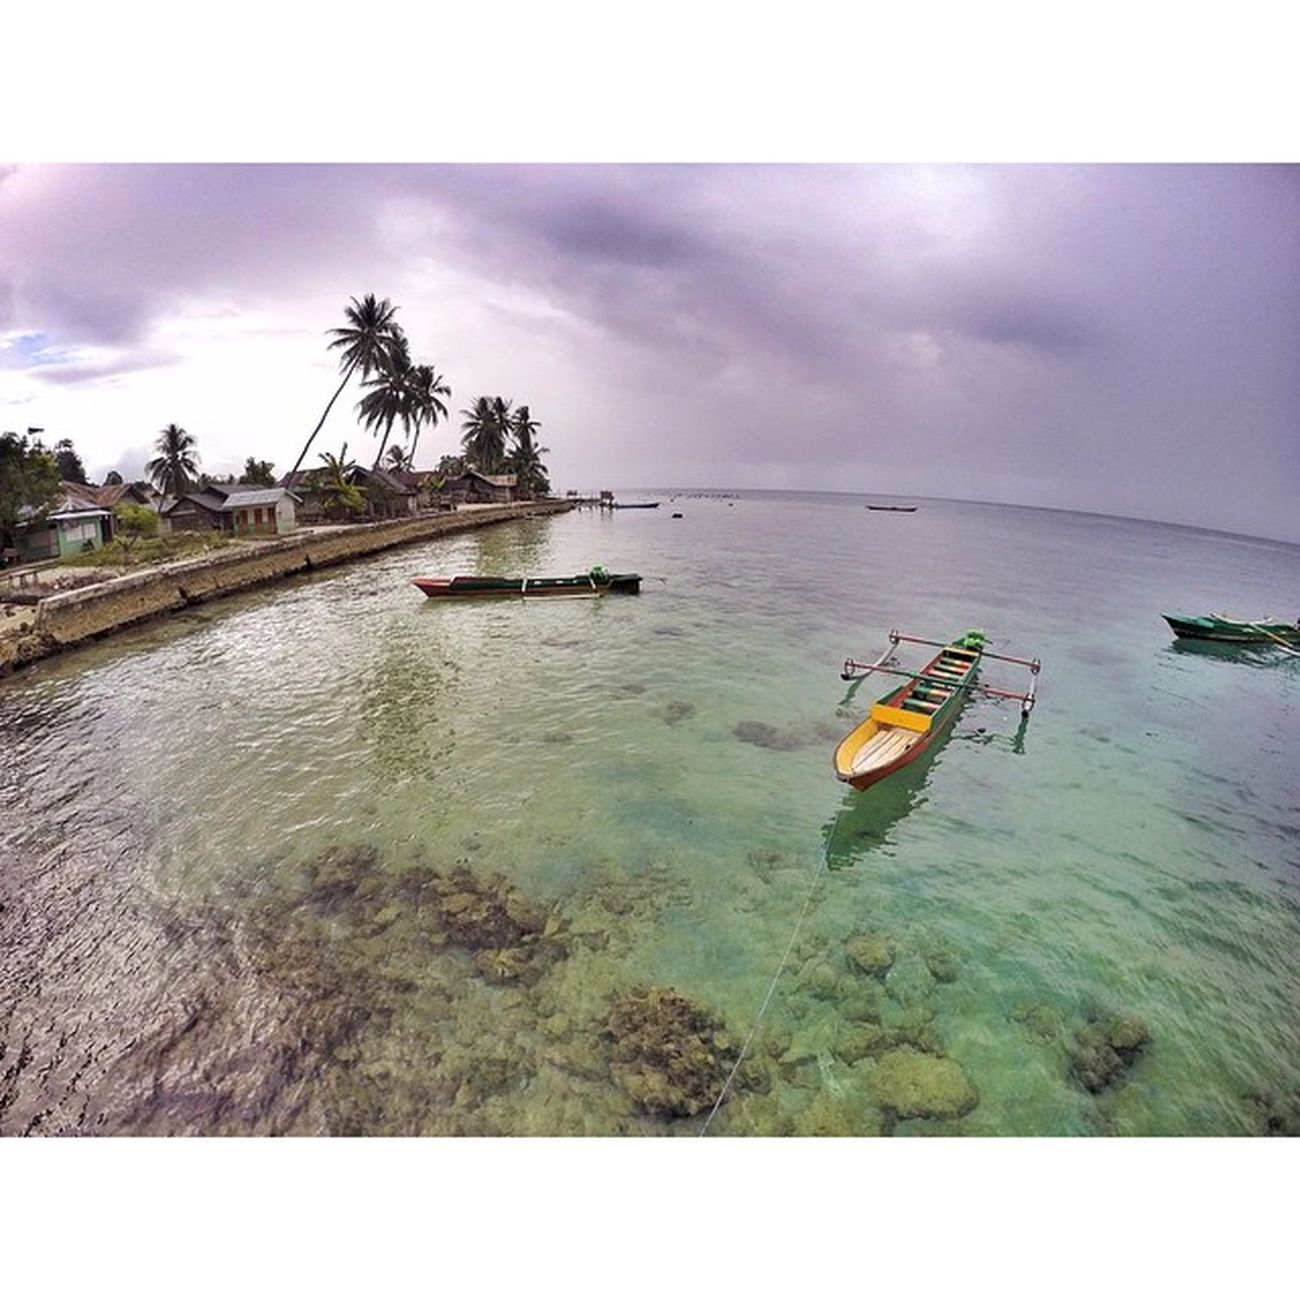 I wish I could turn back the time. A memory will stay forever, not easily being forgotten. Location: Desa Saleman, Pulau Seram - Maluku. Desasaleman Exploreambon IndonesiaKaya Indonesiabanget Indonesiacantik Maluku  Wonderfulindonesia Travelgram Picoftheday Photooftheday Instalike Traveling Travelingindonesia Ocean Beach Sea Scenery Nature